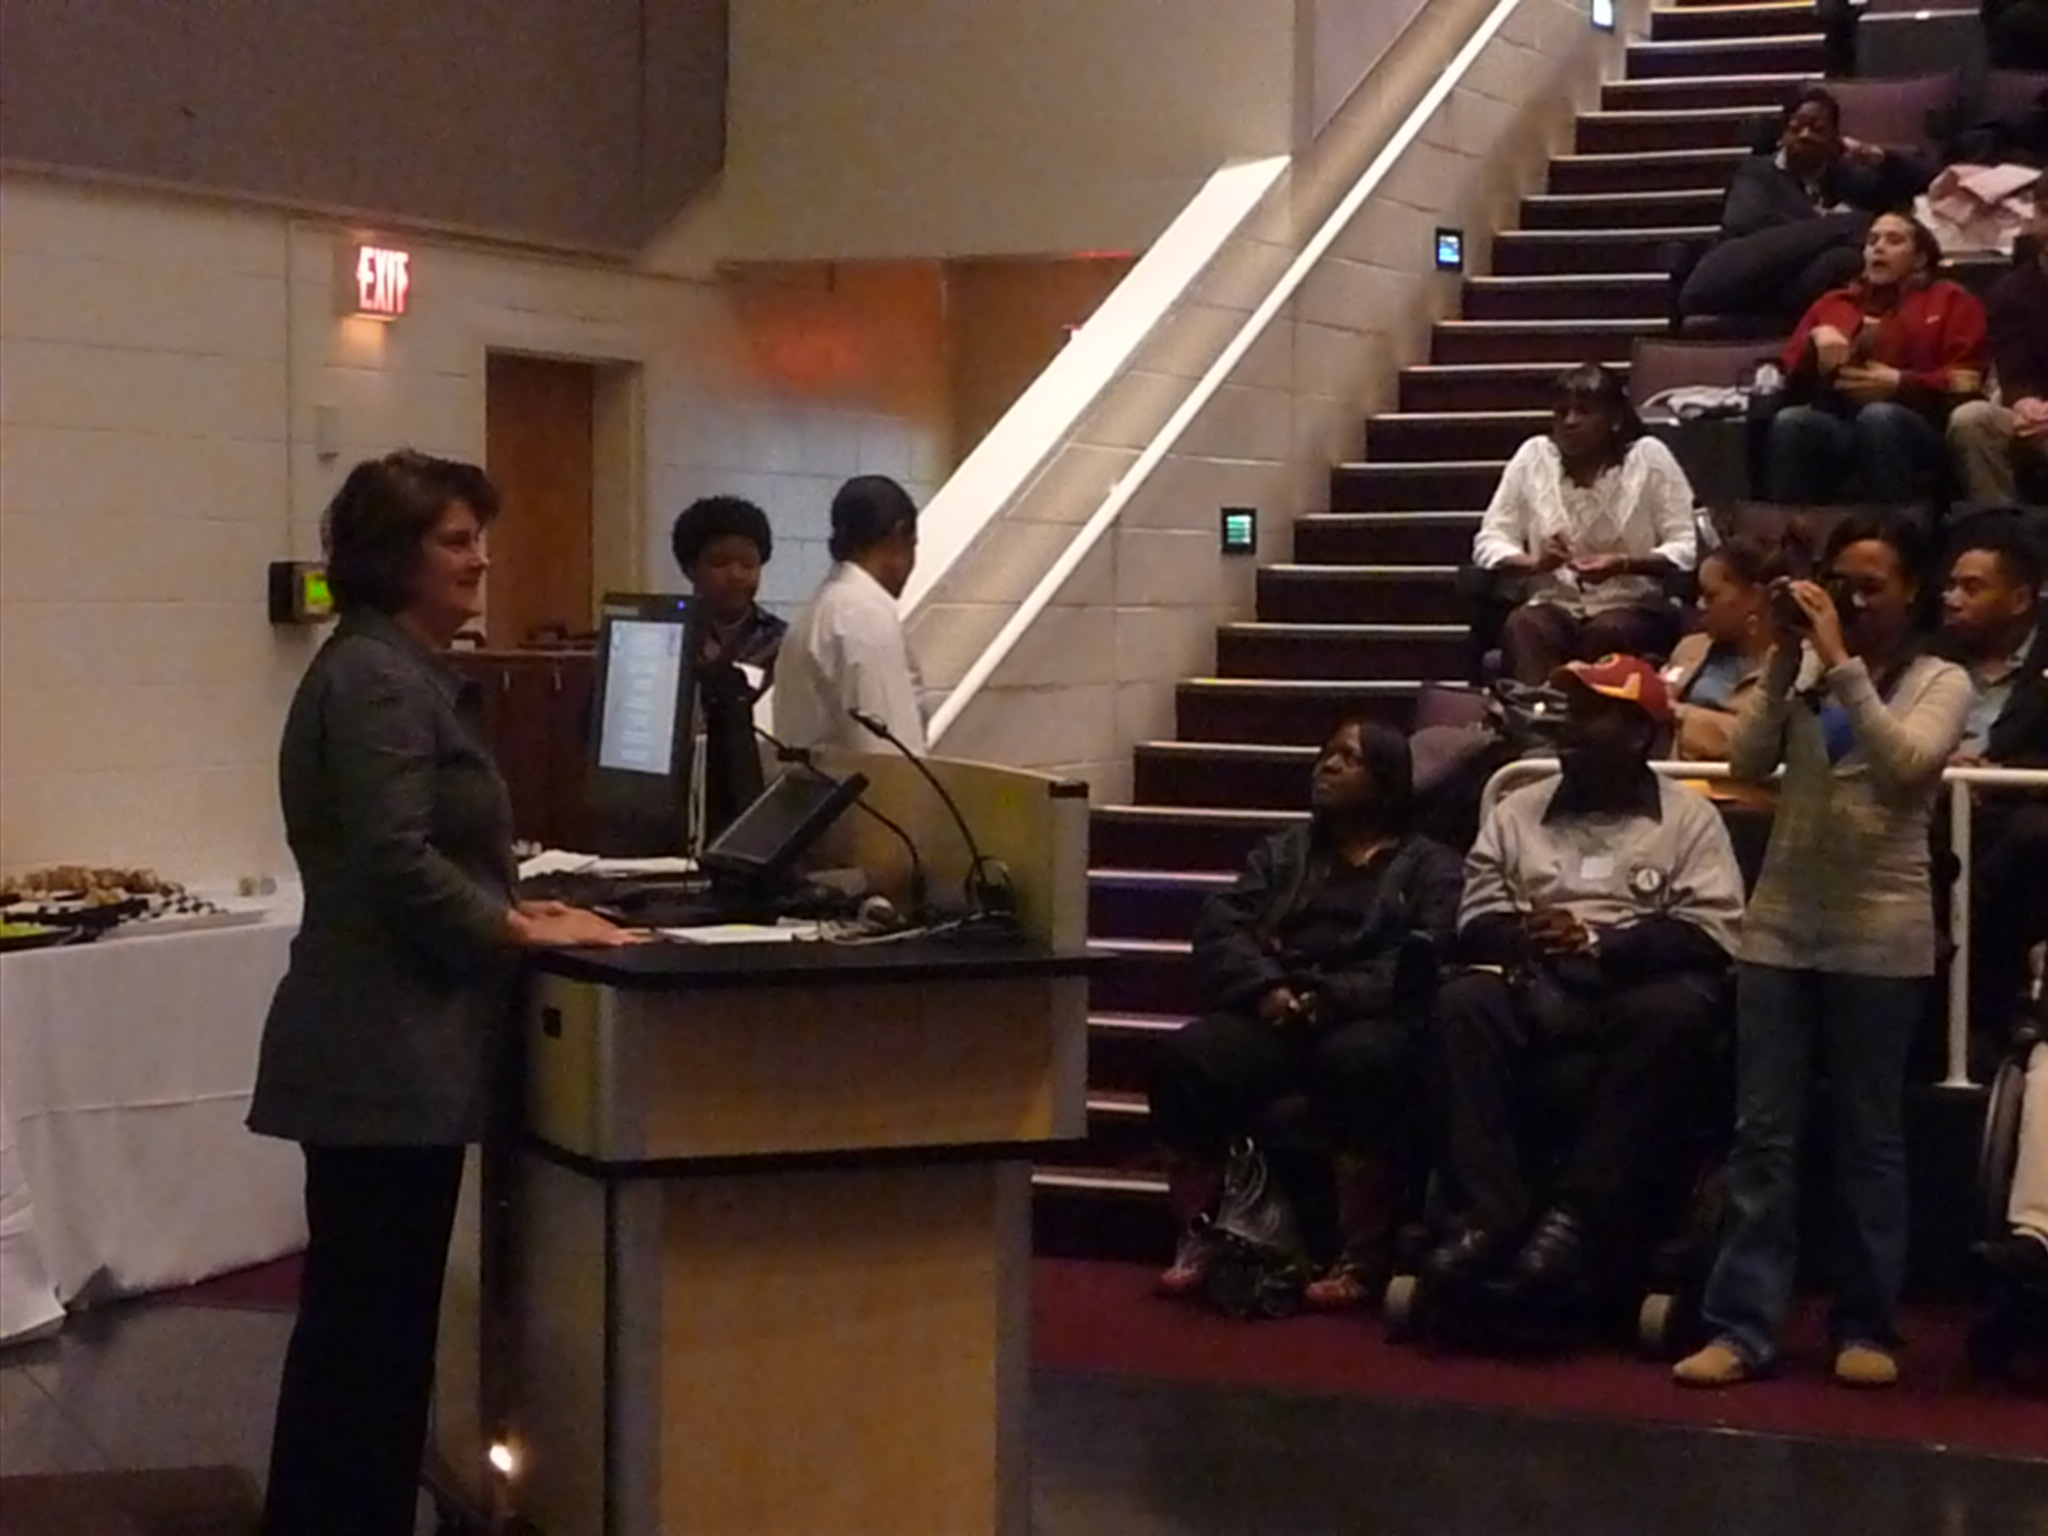 Virginia first lady Anne Holton addressed AmeriCorps members and led them in reciting the AmeriCorps pledge.